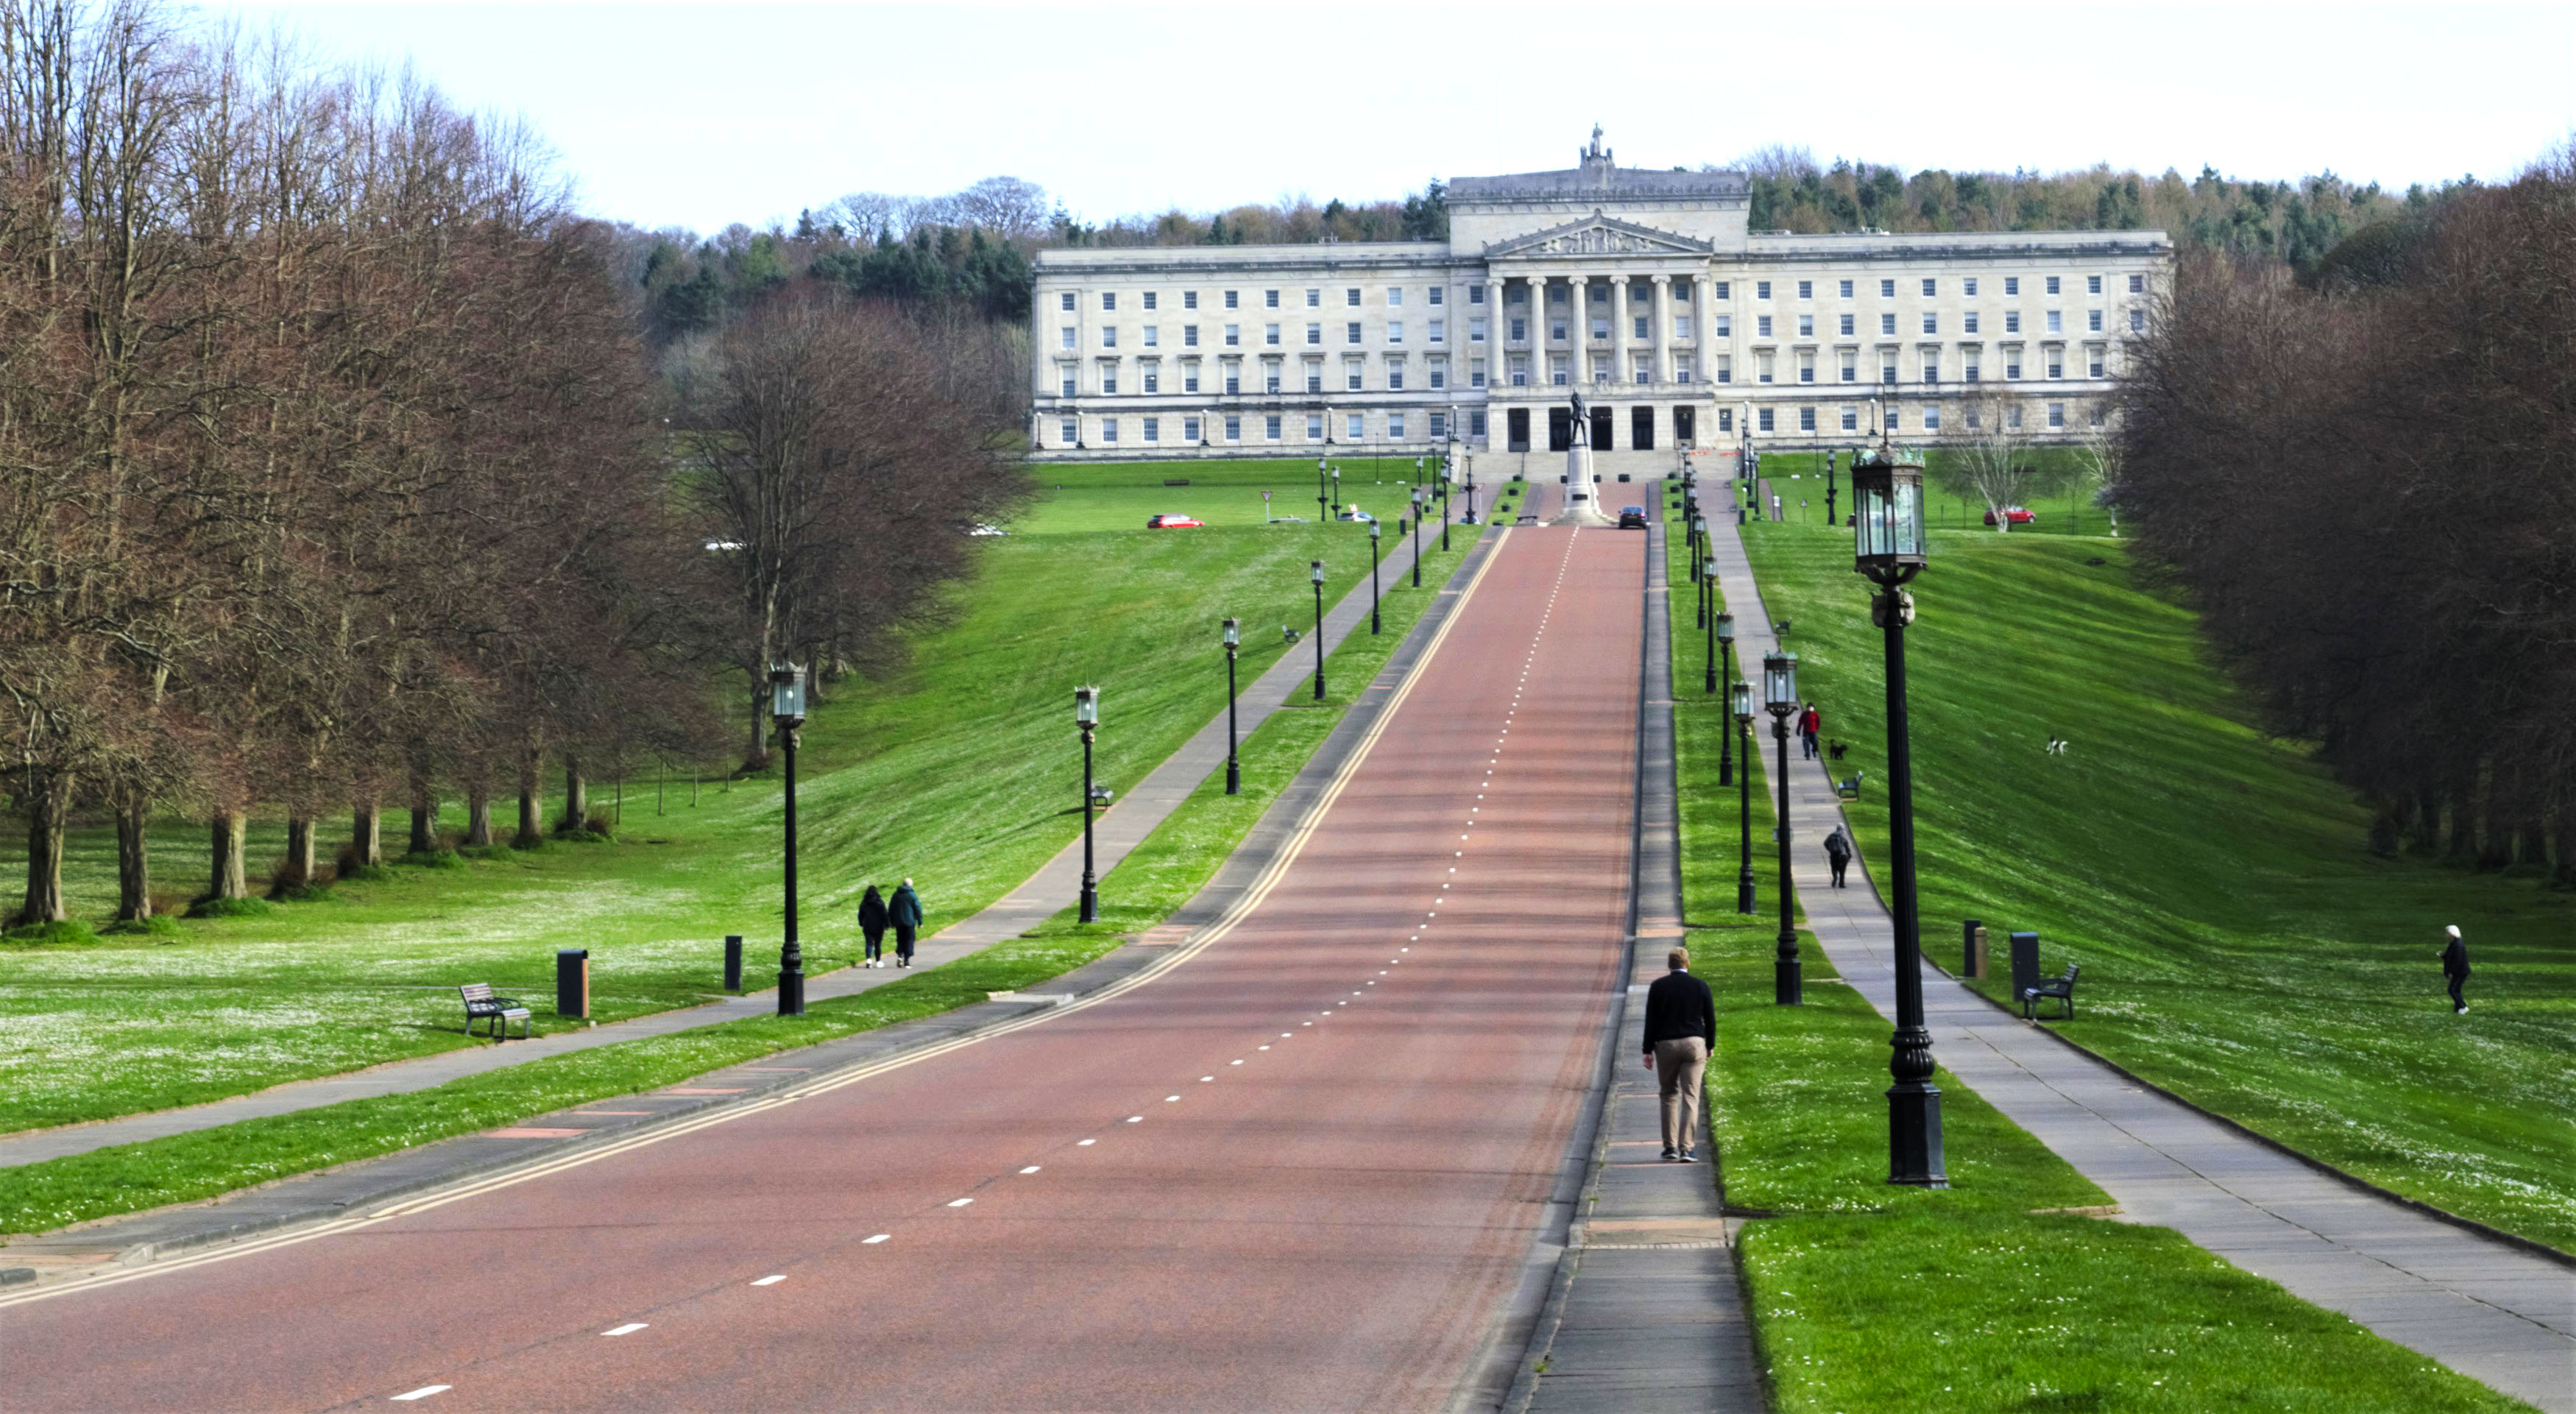 Northern Ireland Struggles On Without a Government